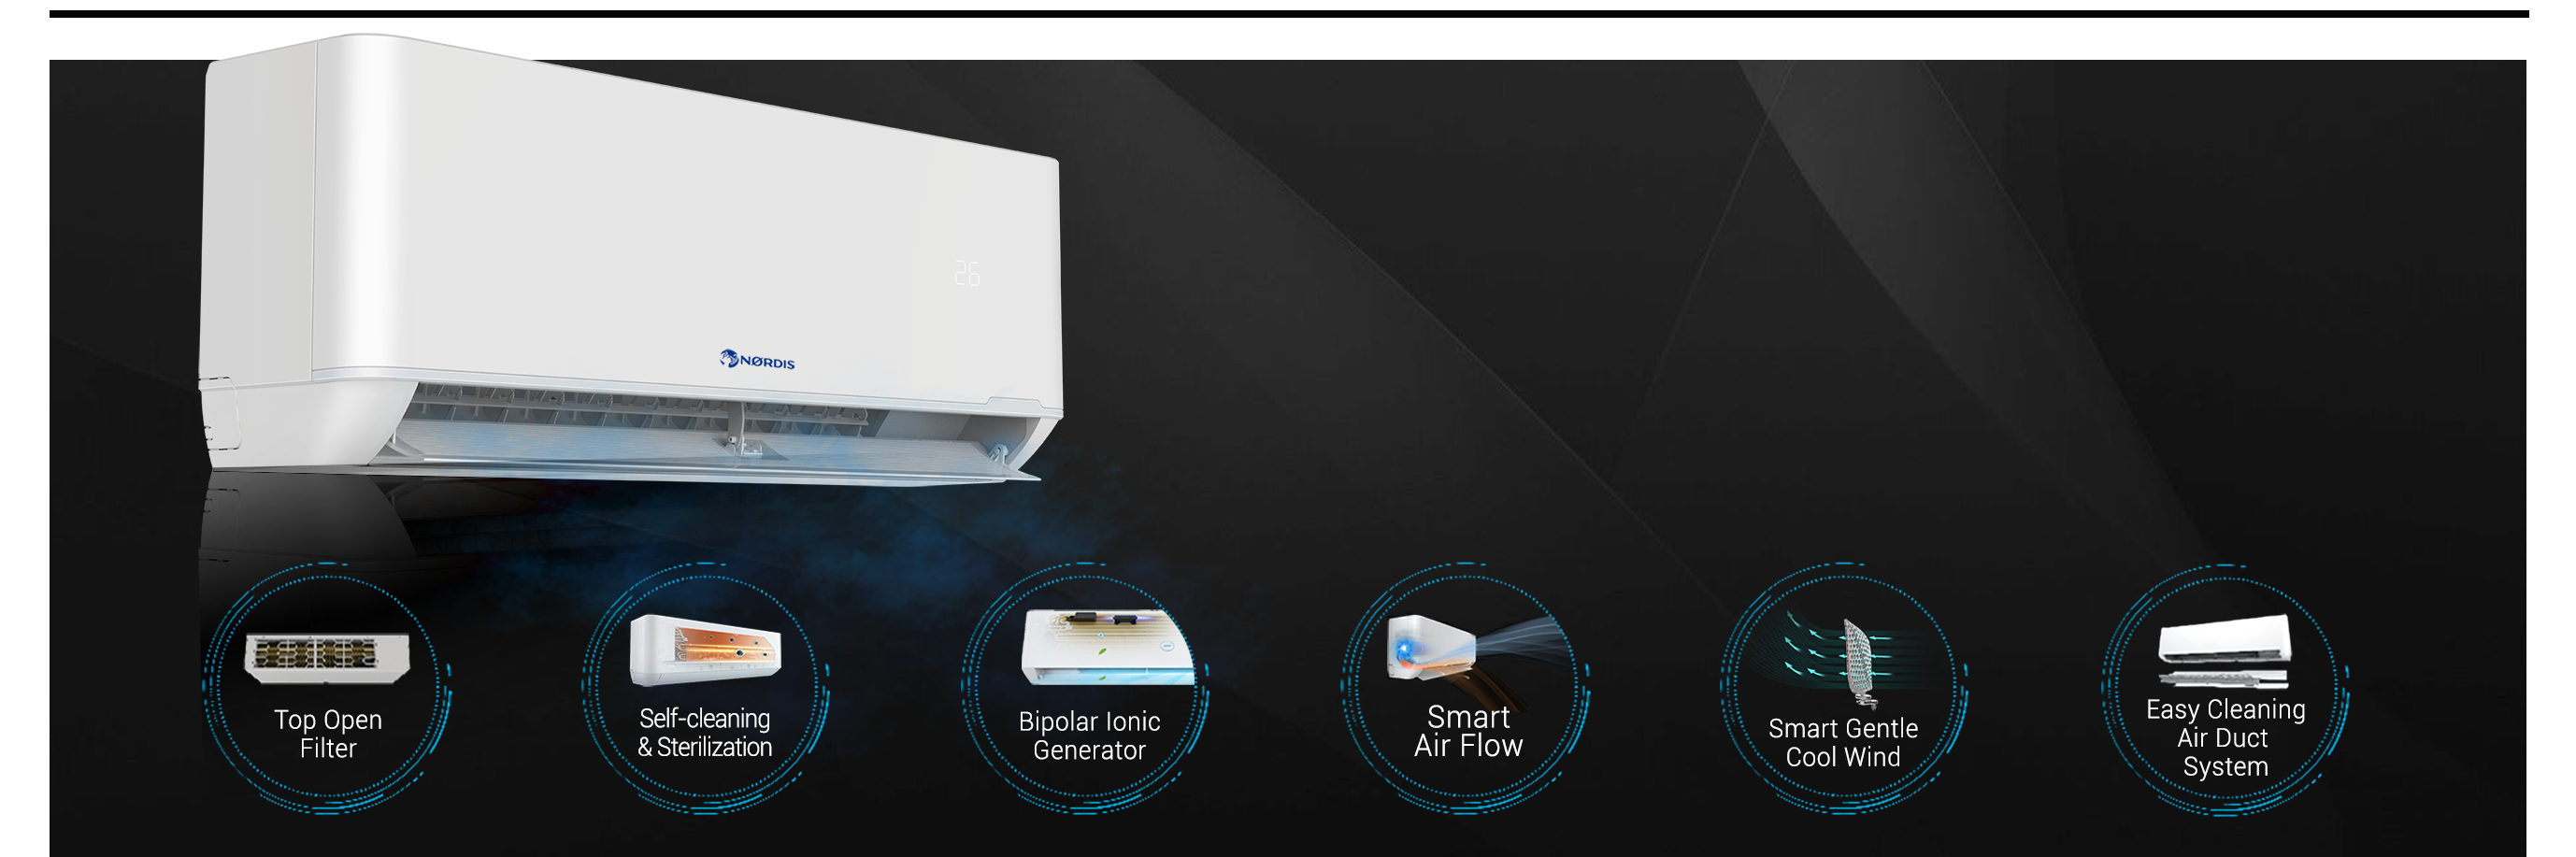 NØRDIS ORION PRO is a new generation inverter air conditioner-heat pump.